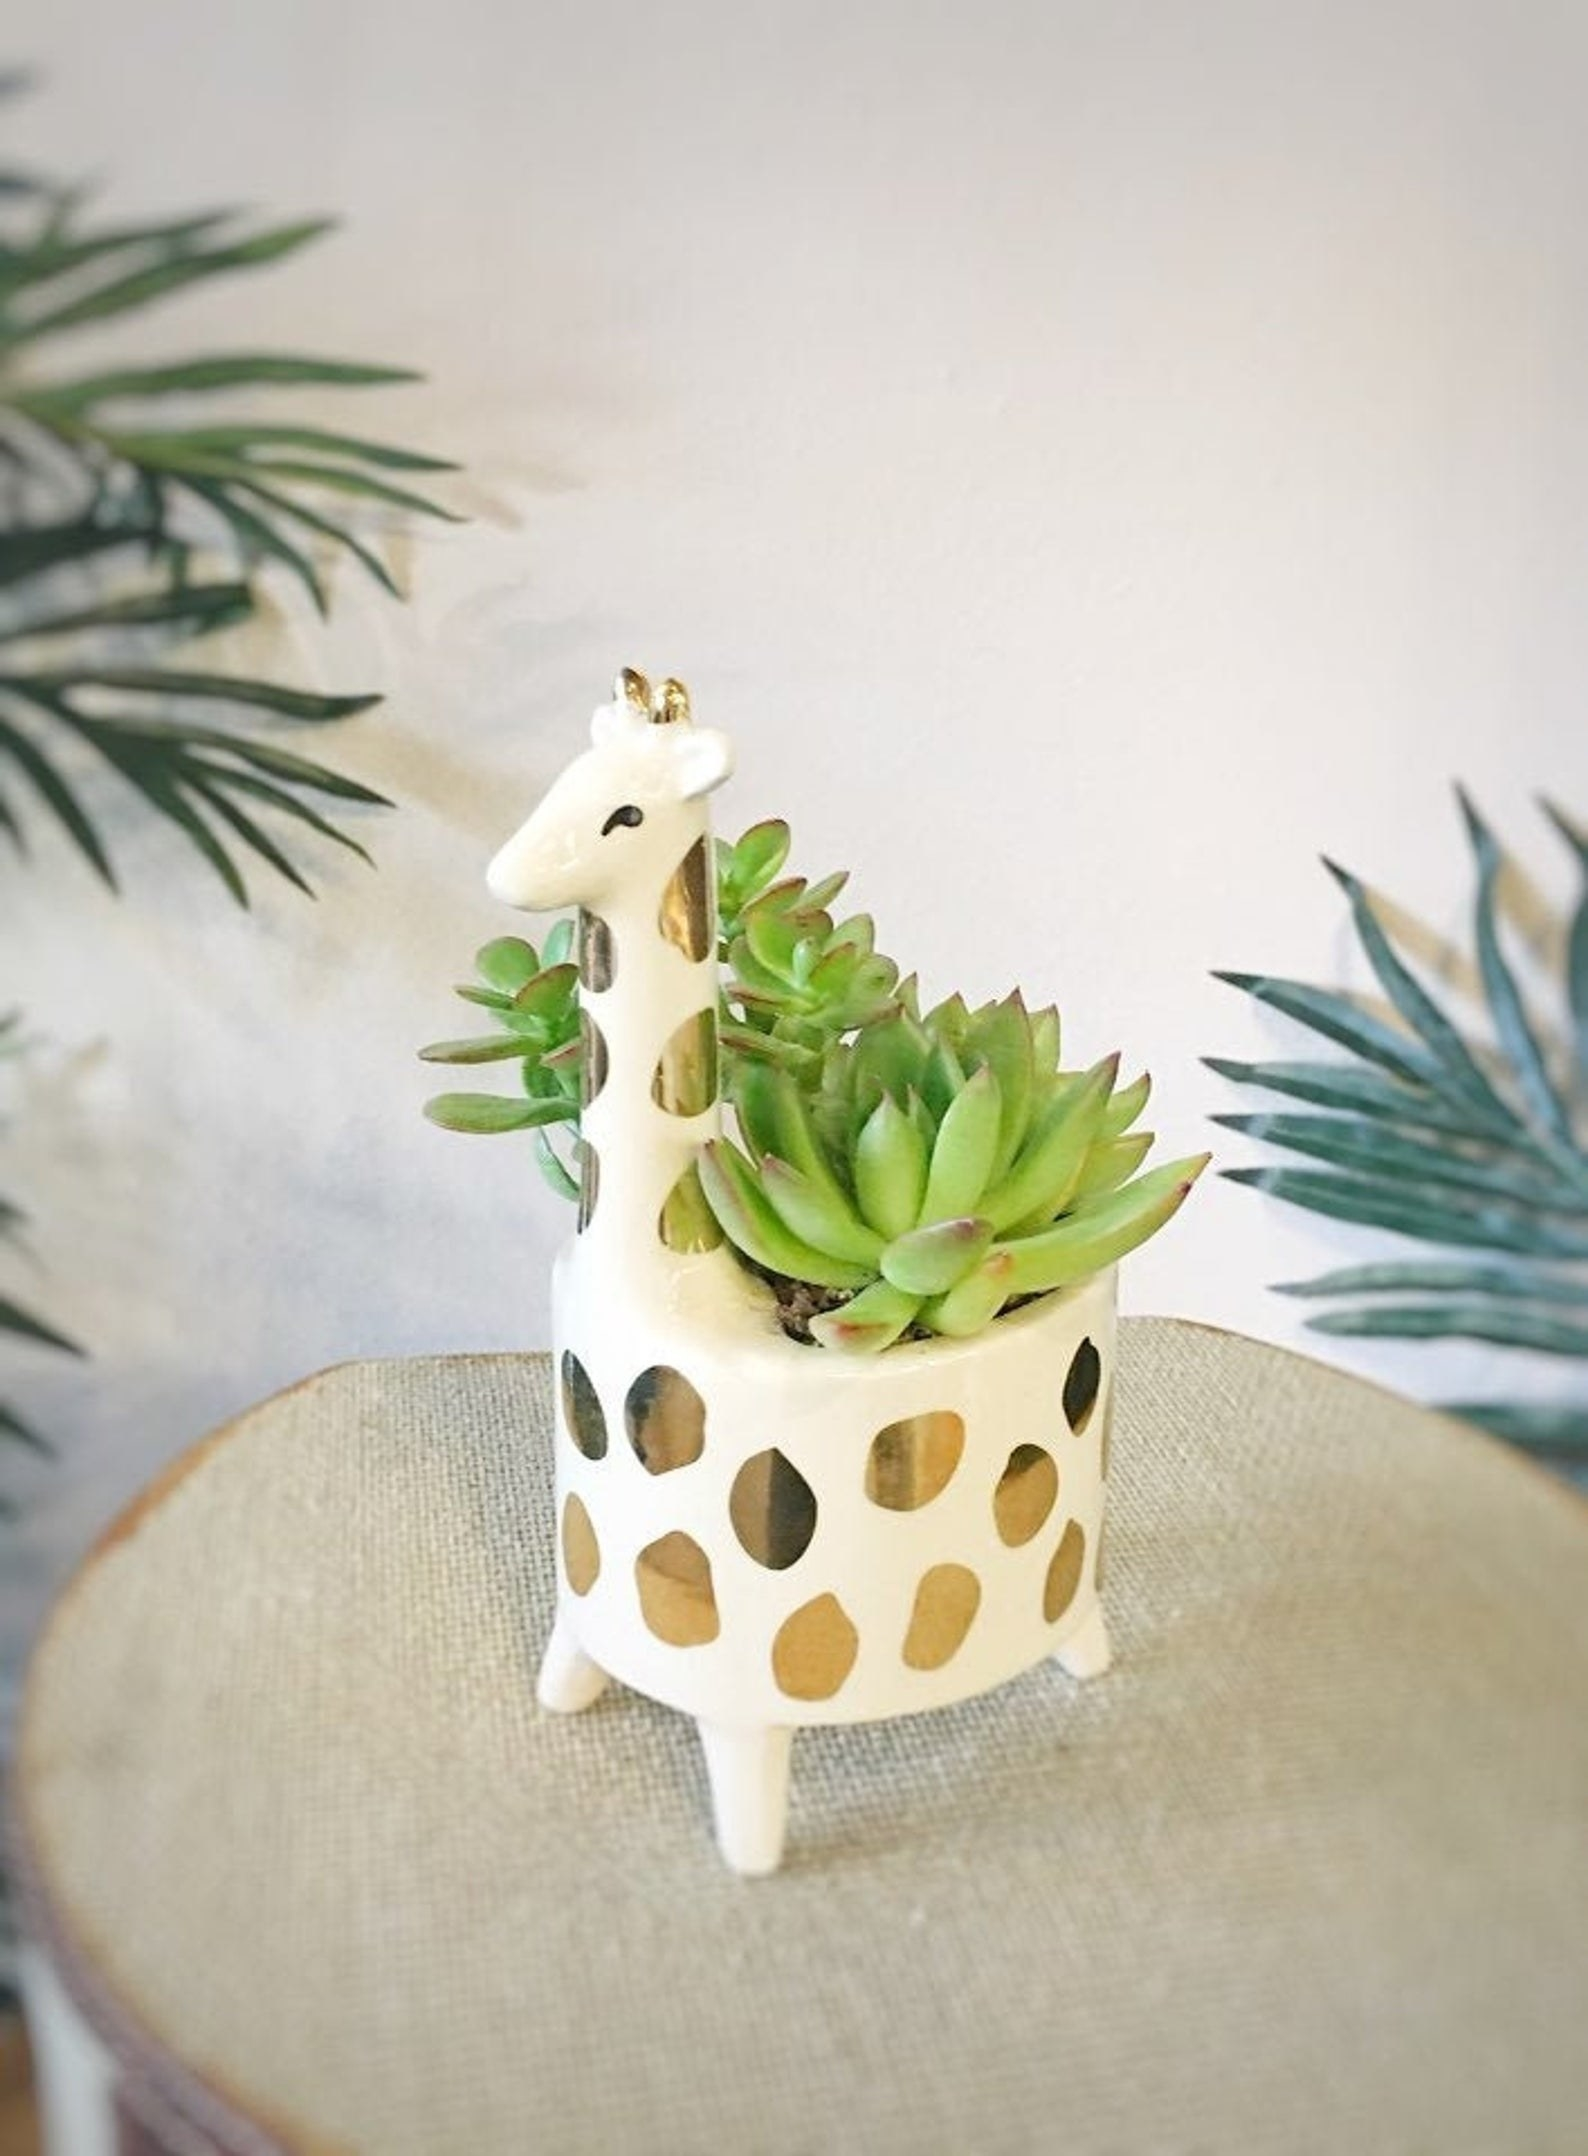 Giraffe-shaped succulent planter placed on table